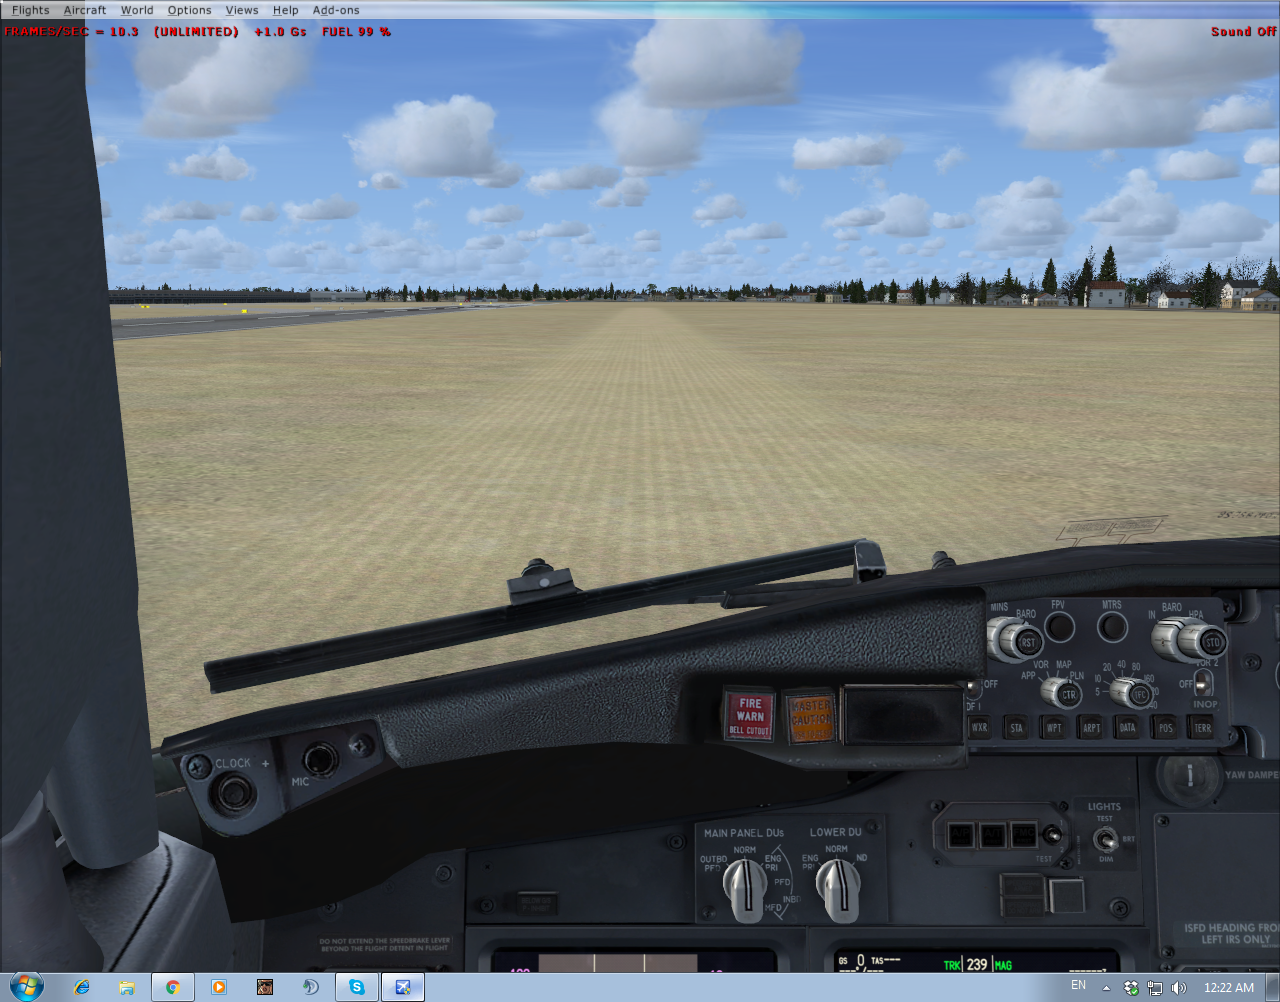 FSX Performance Issues - Hardware and OS Discussions, suggestions